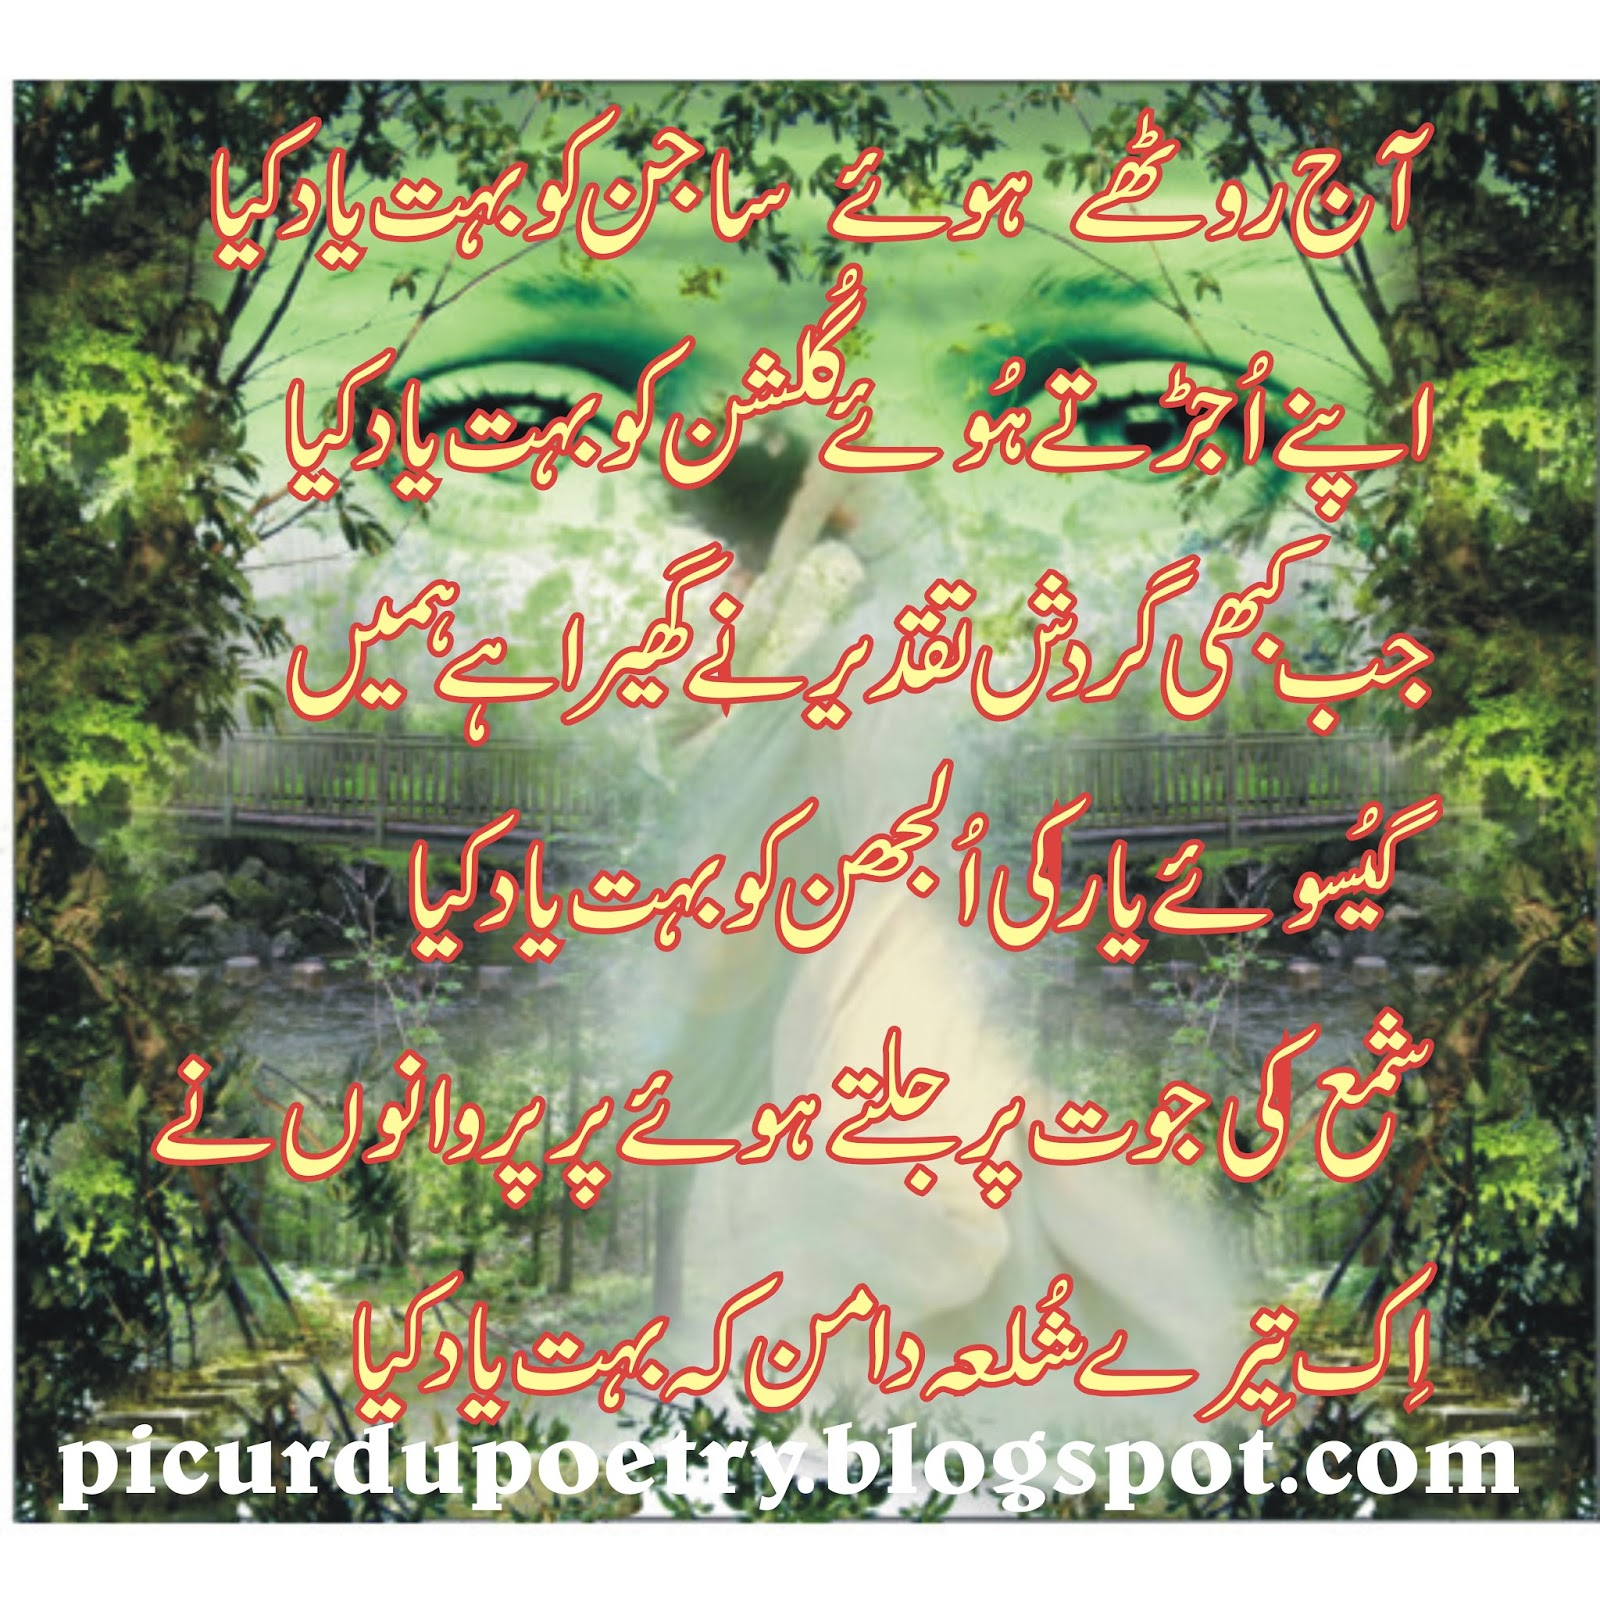 Urdu Poetry Guzall Urdupotery Urdumoves Panjabi Movies